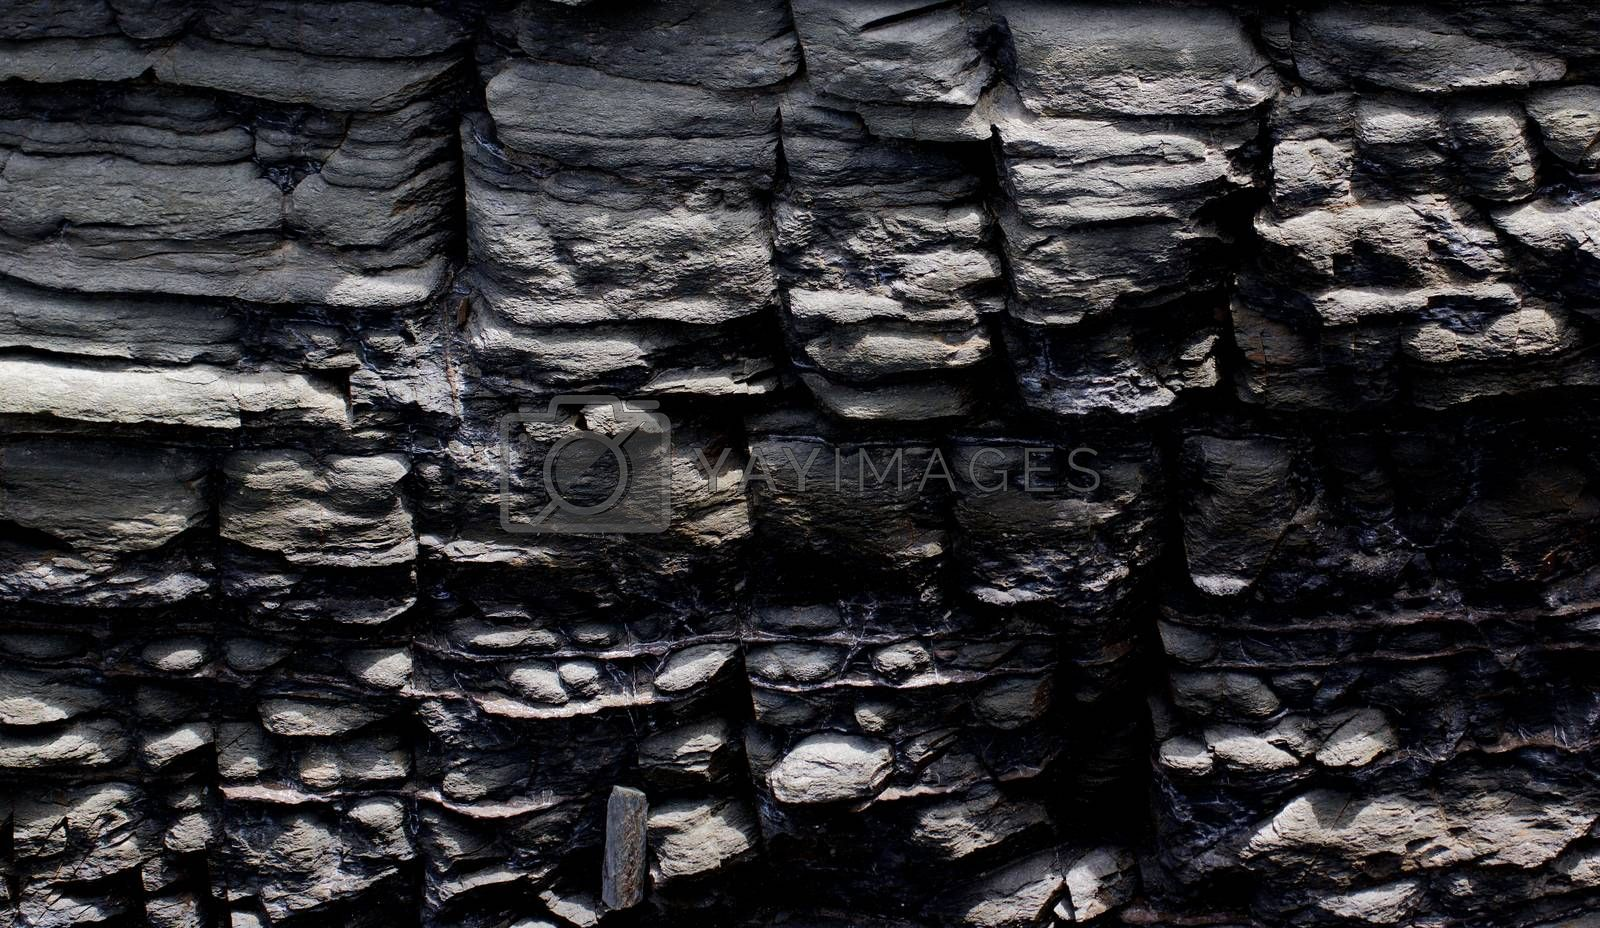 Background of Textured Dark Grey Shale Stone with Weathered Open-pit closeup Outdoors